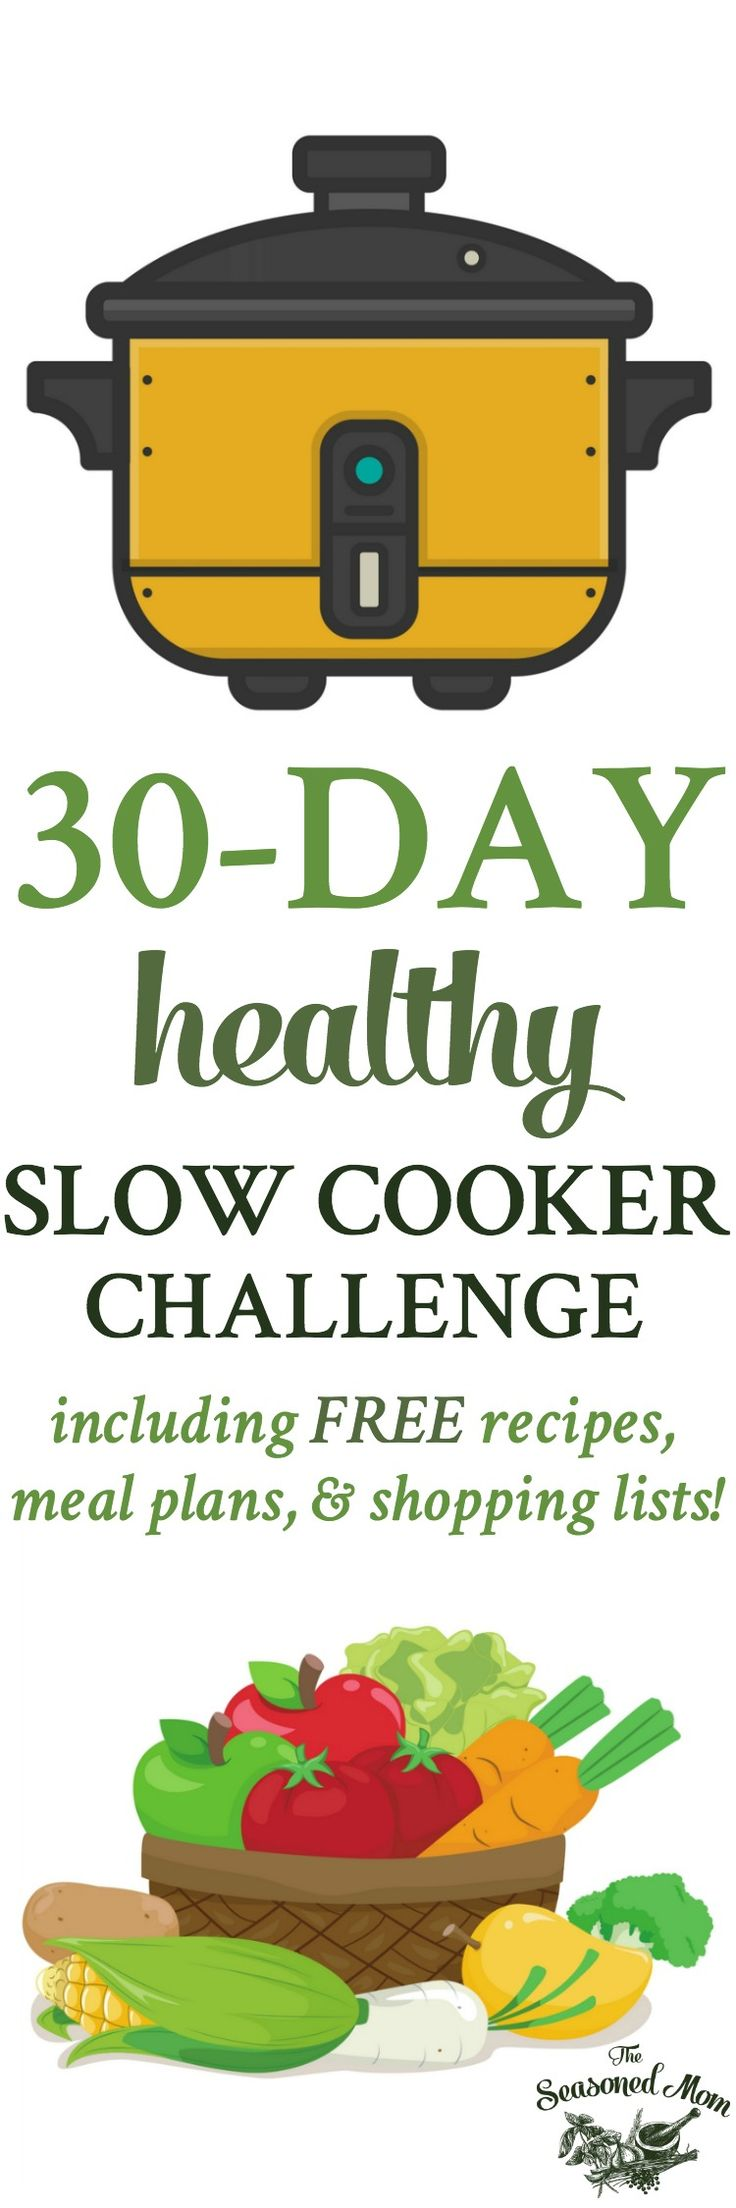 This 30-Day Healthy Slow Cooker Challenge has all of the resources that you need to make healthy and easy dinners each night -- including FREE recipes, meal plan, and shopping lists!